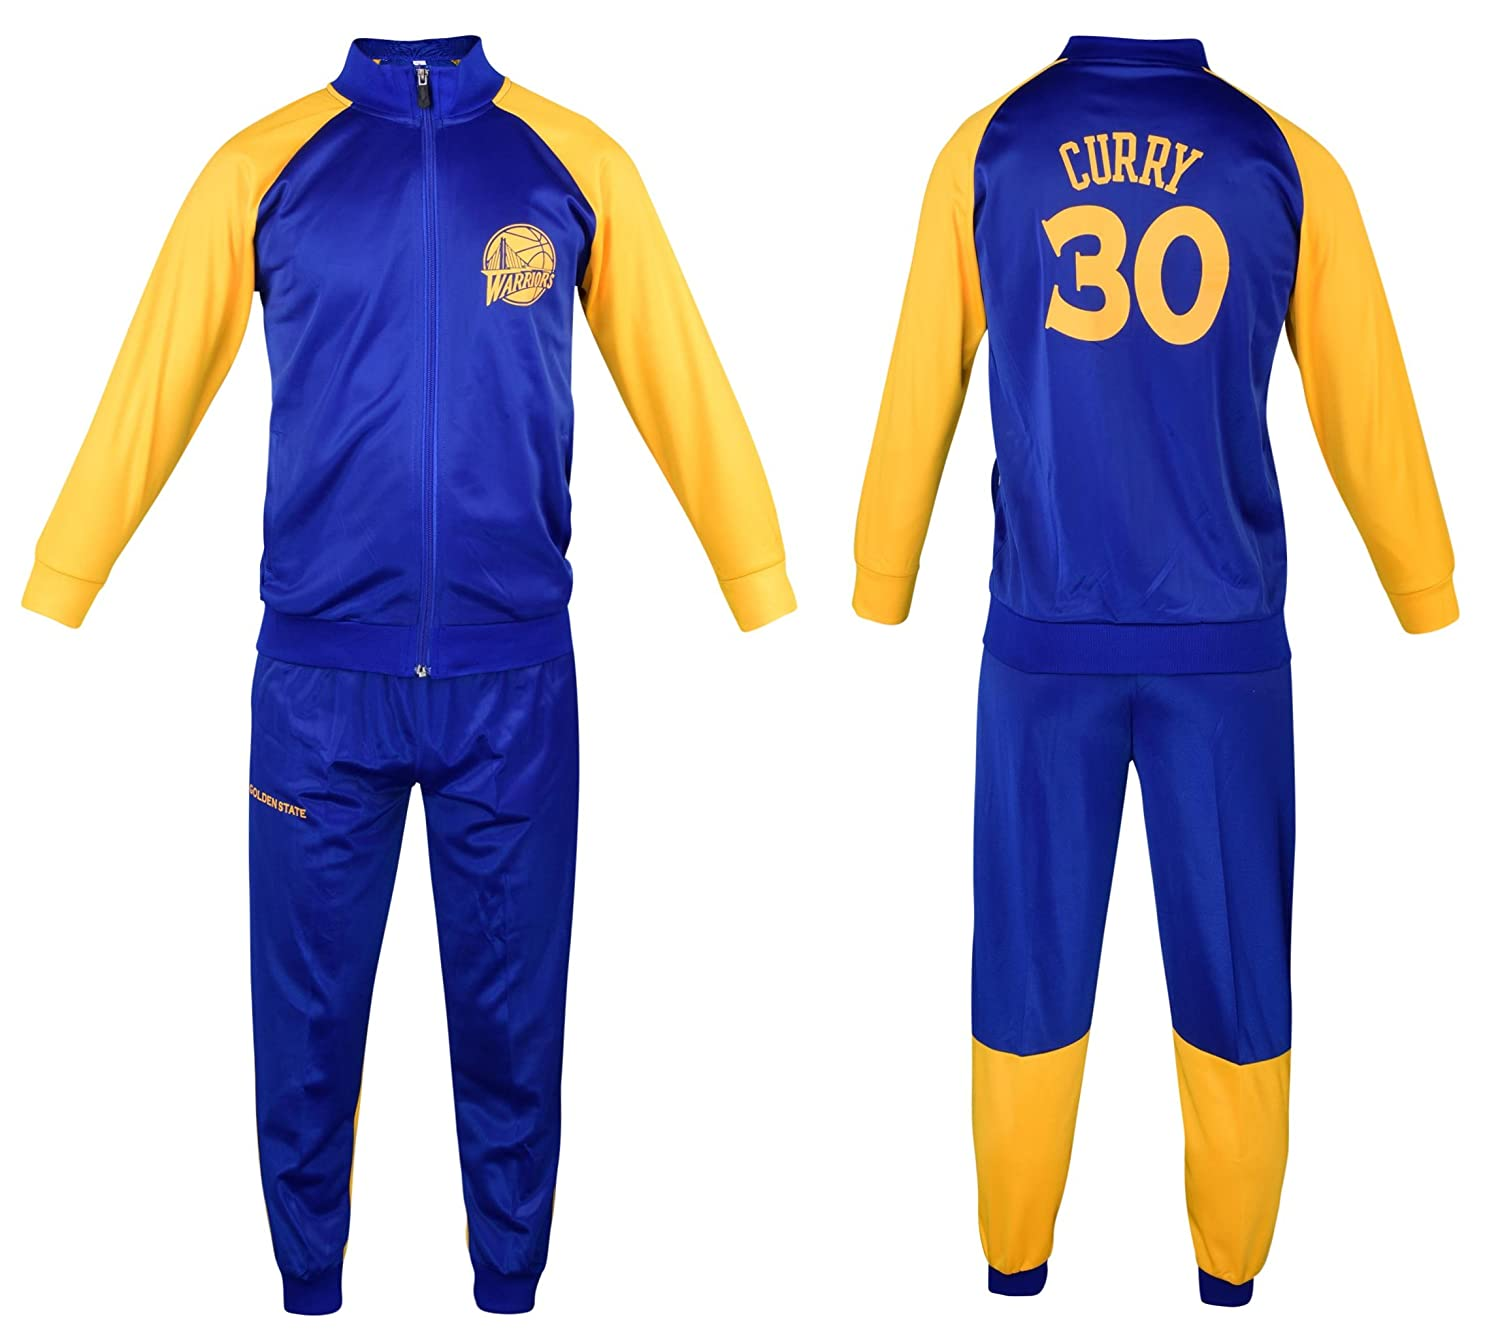 check out 67d82 0f9b0 Sports Fanatics Steph Curry Basketball Tracksuit Youth Sizes Premium  Quality Track Jacket with Pants